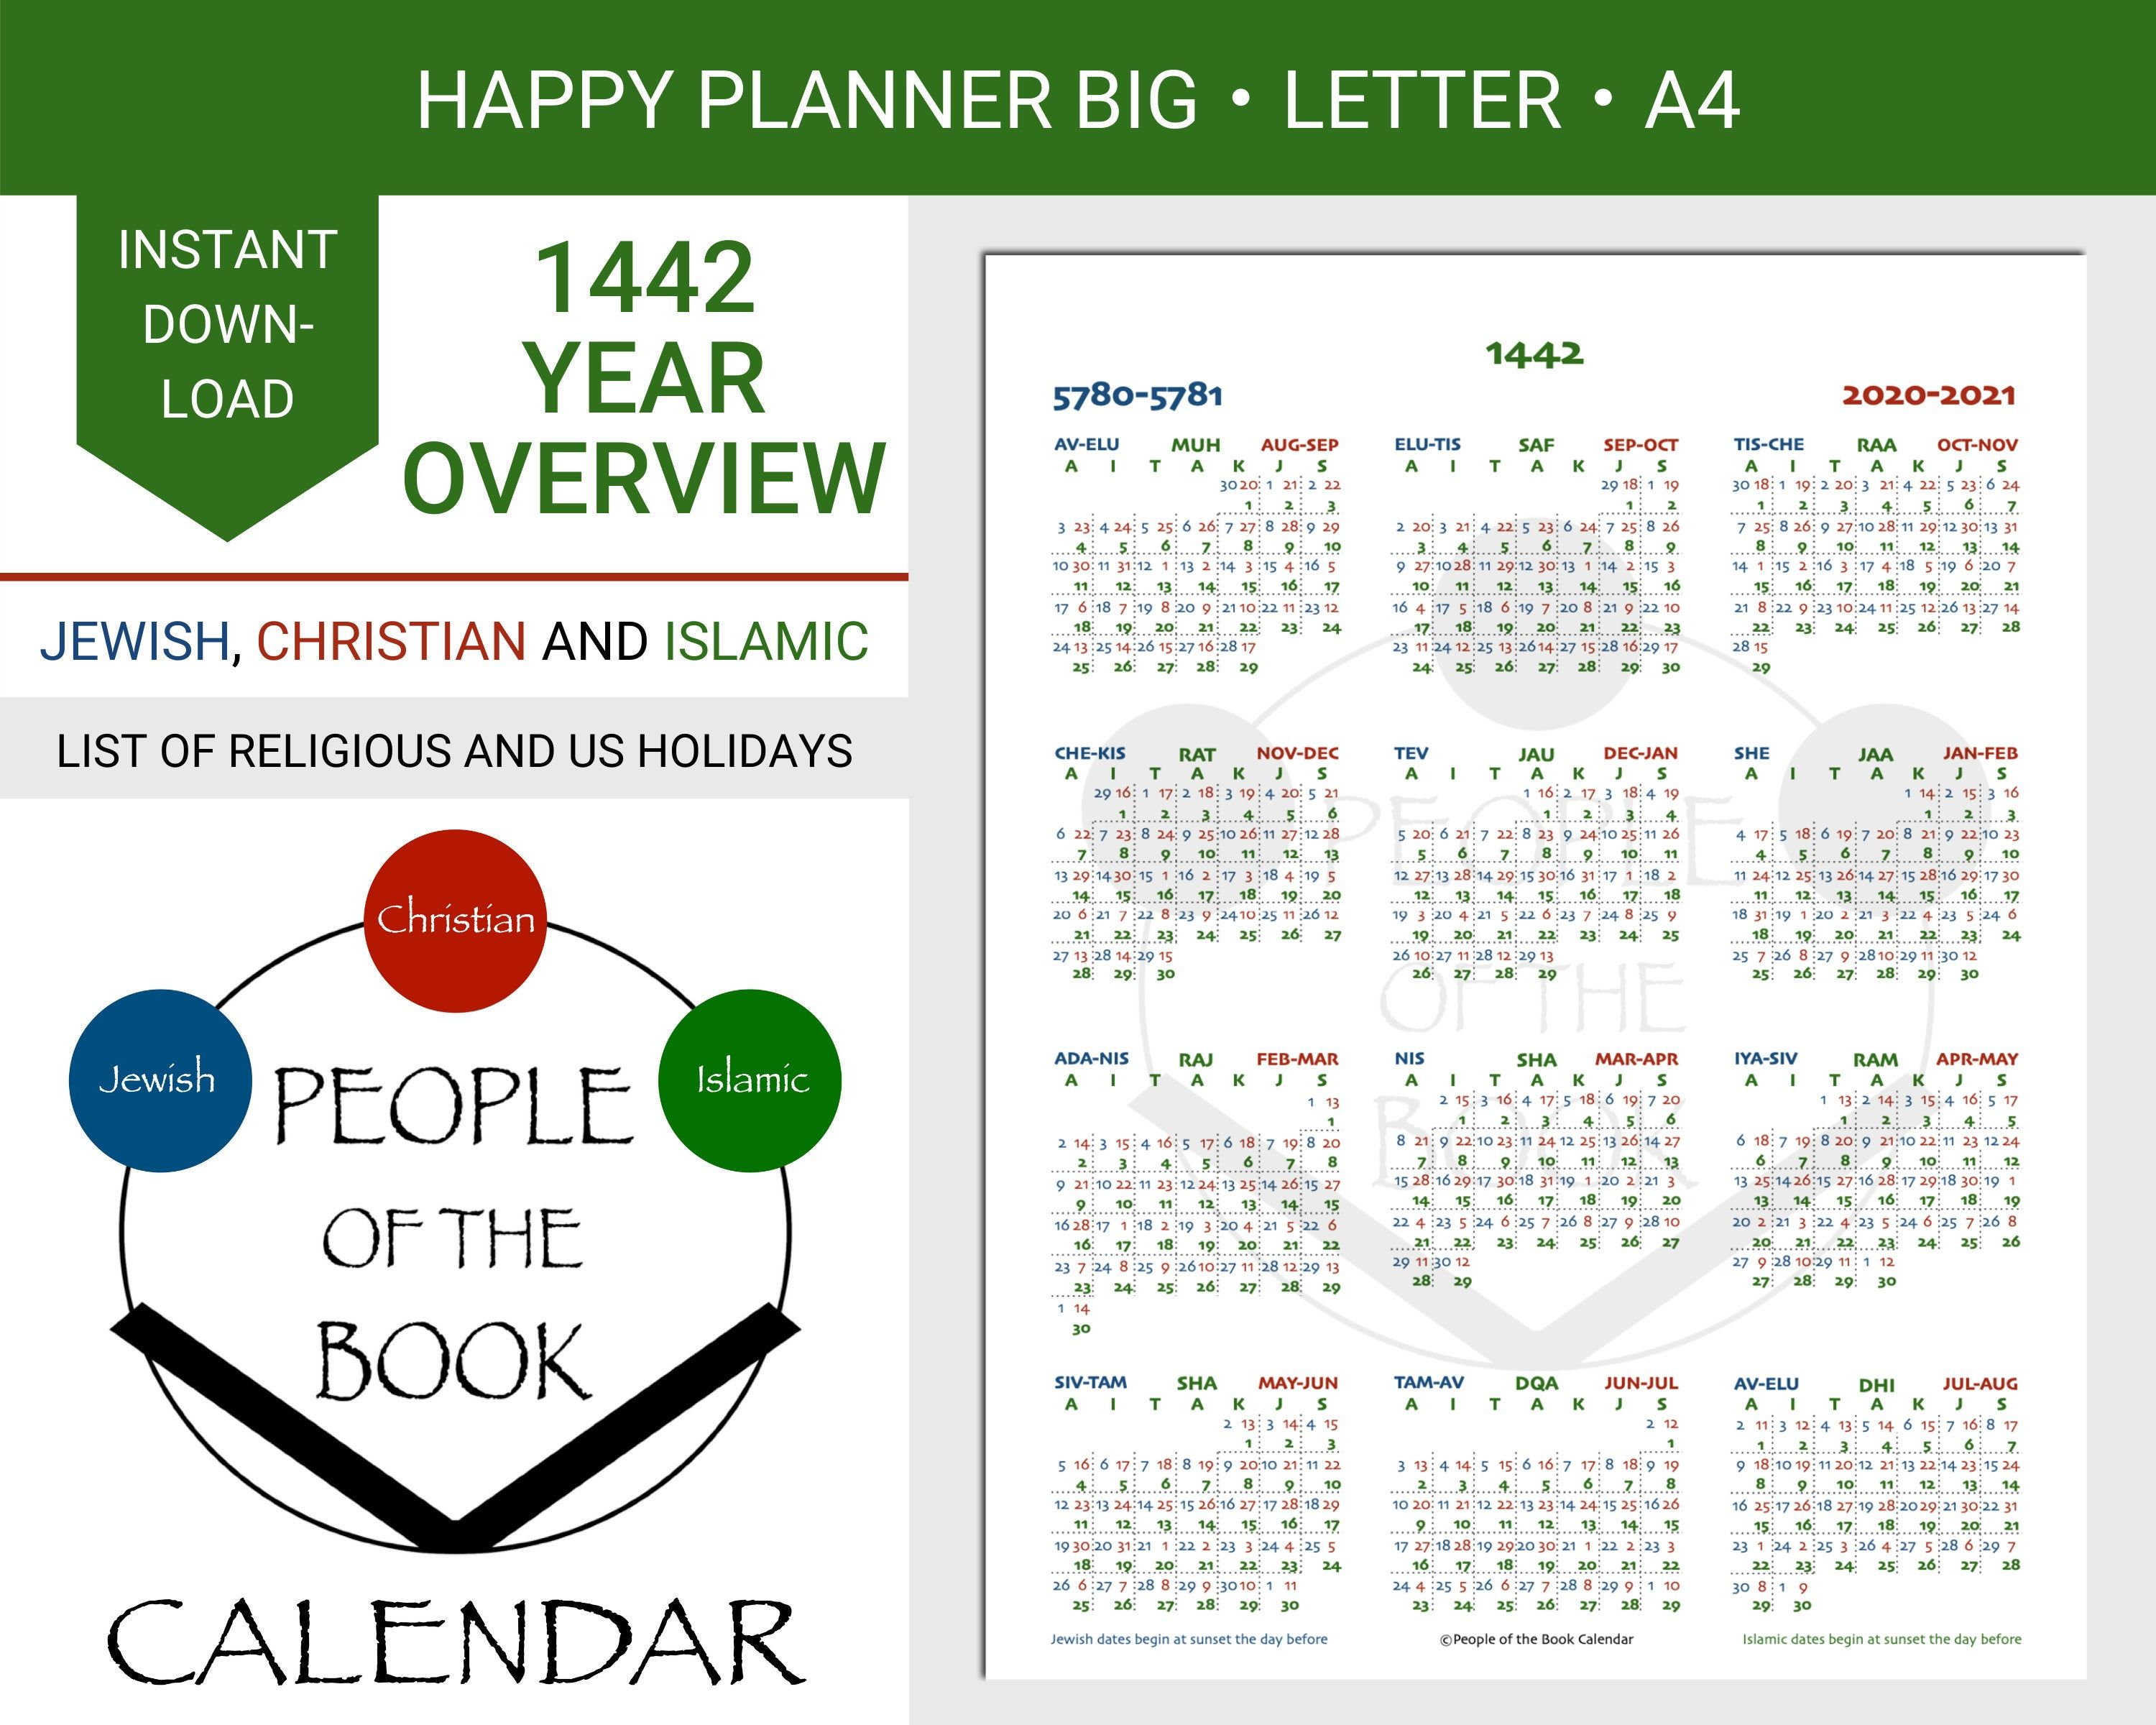 1442 Ah Islamic Hijri Year Overview People Of The Book Etsy In 2021 Happy Planner Holiday Lettering Lettering